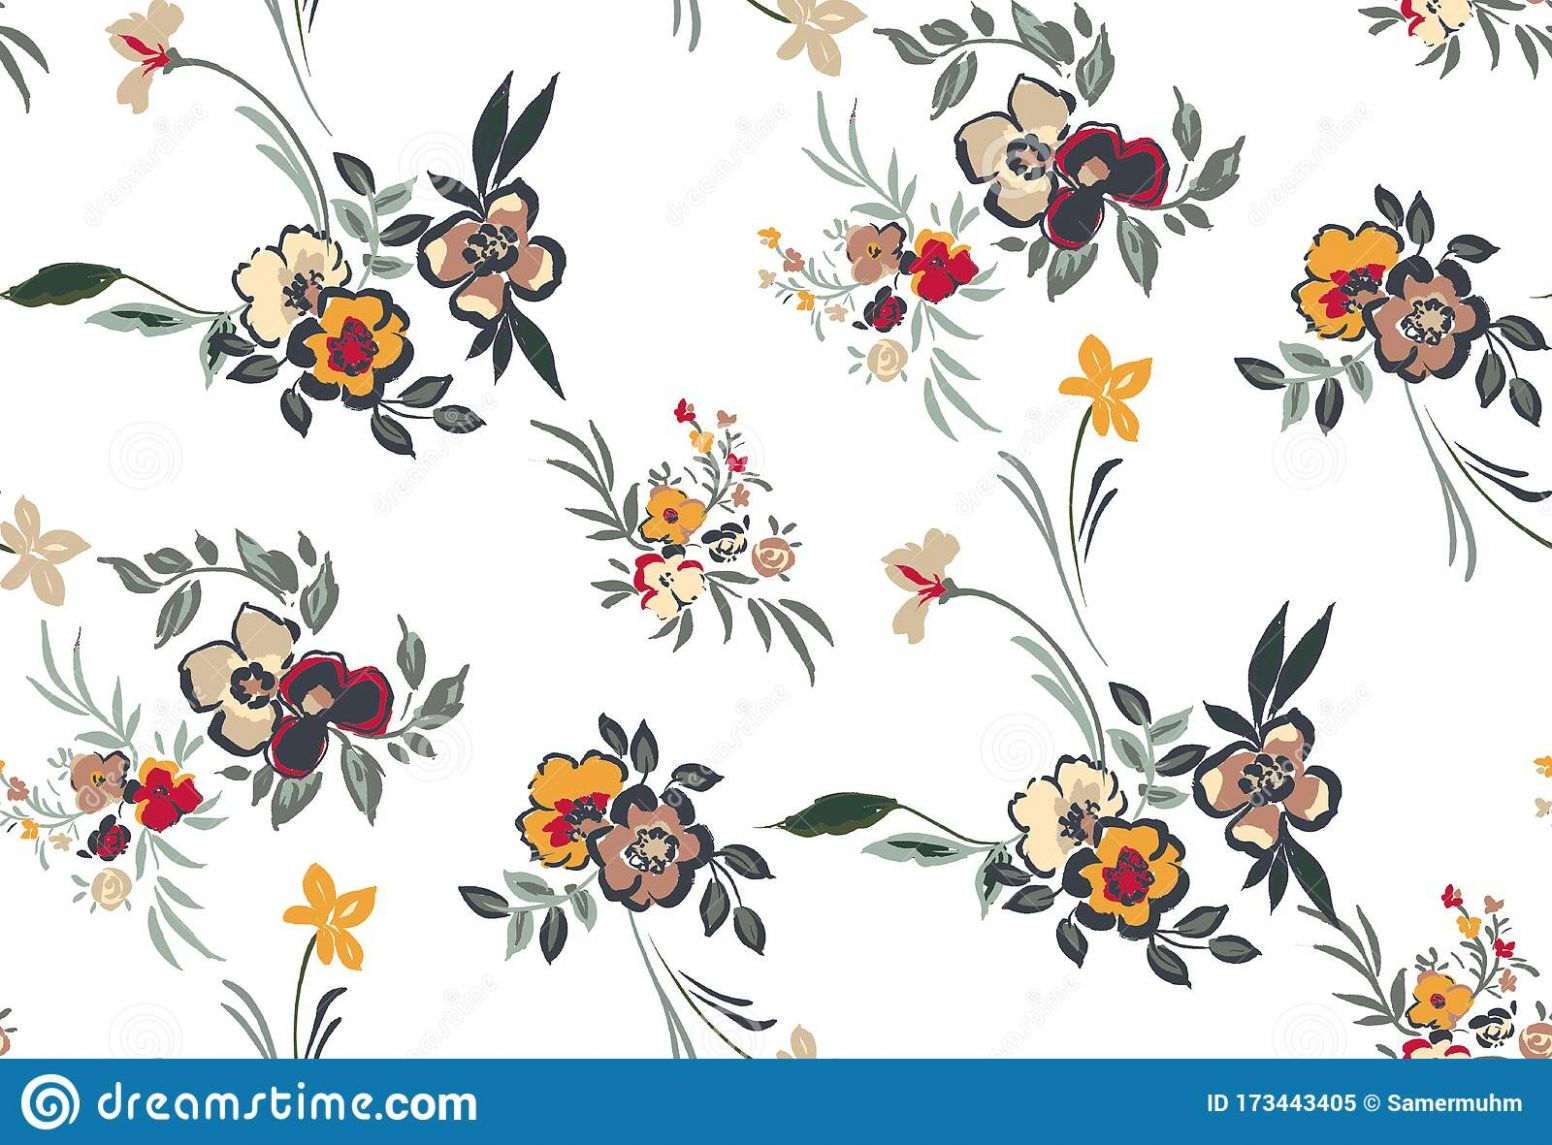 Colorful Seamless Floral Pattern. Design For Home Decor, Fabric ..